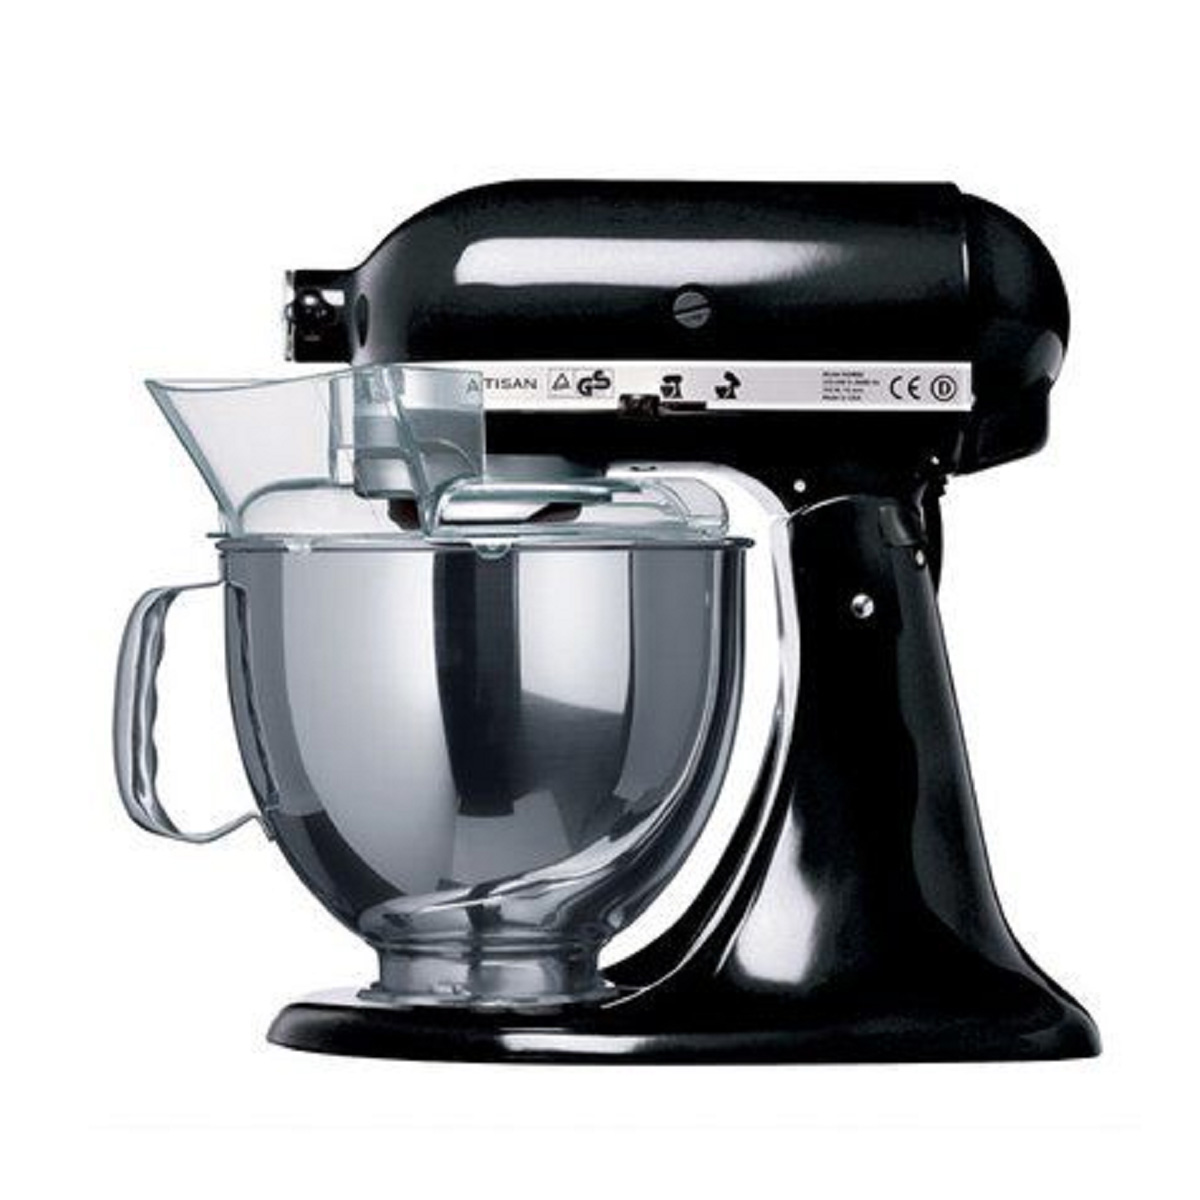 kitchenaid 91020 artisan ksm150 stand mixer home clearance. Black Bedroom Furniture Sets. Home Design Ideas